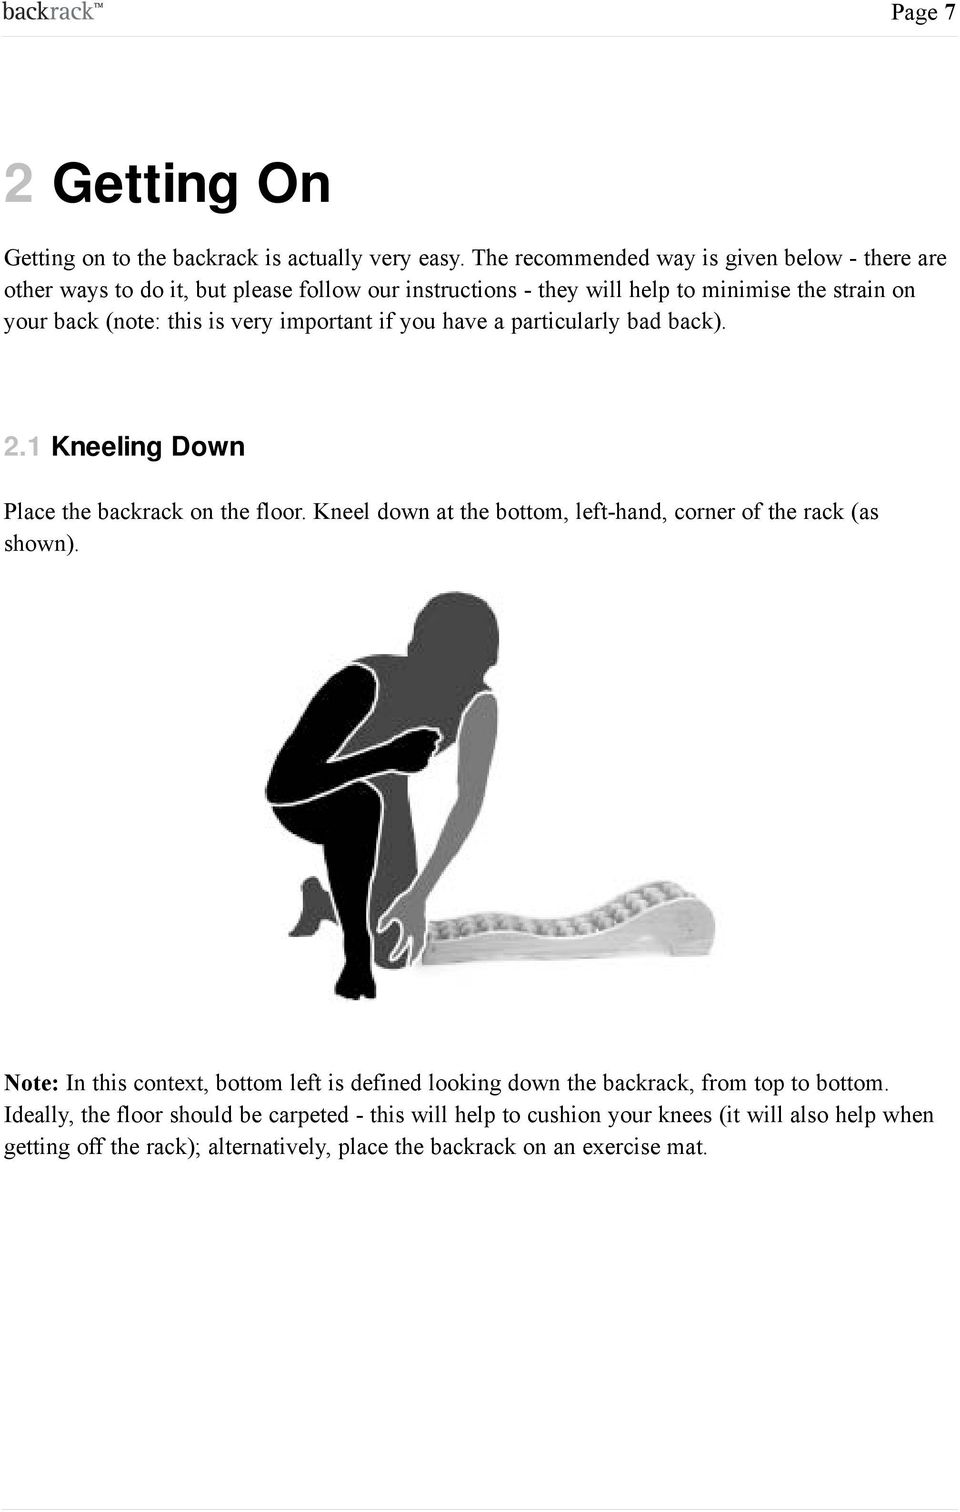 very important if you have a particularly bad back). 2.1 Kneeling Down Place the backrack on the floor. Kneel down at the bottom, left-hand, corner of the rack (as shown).